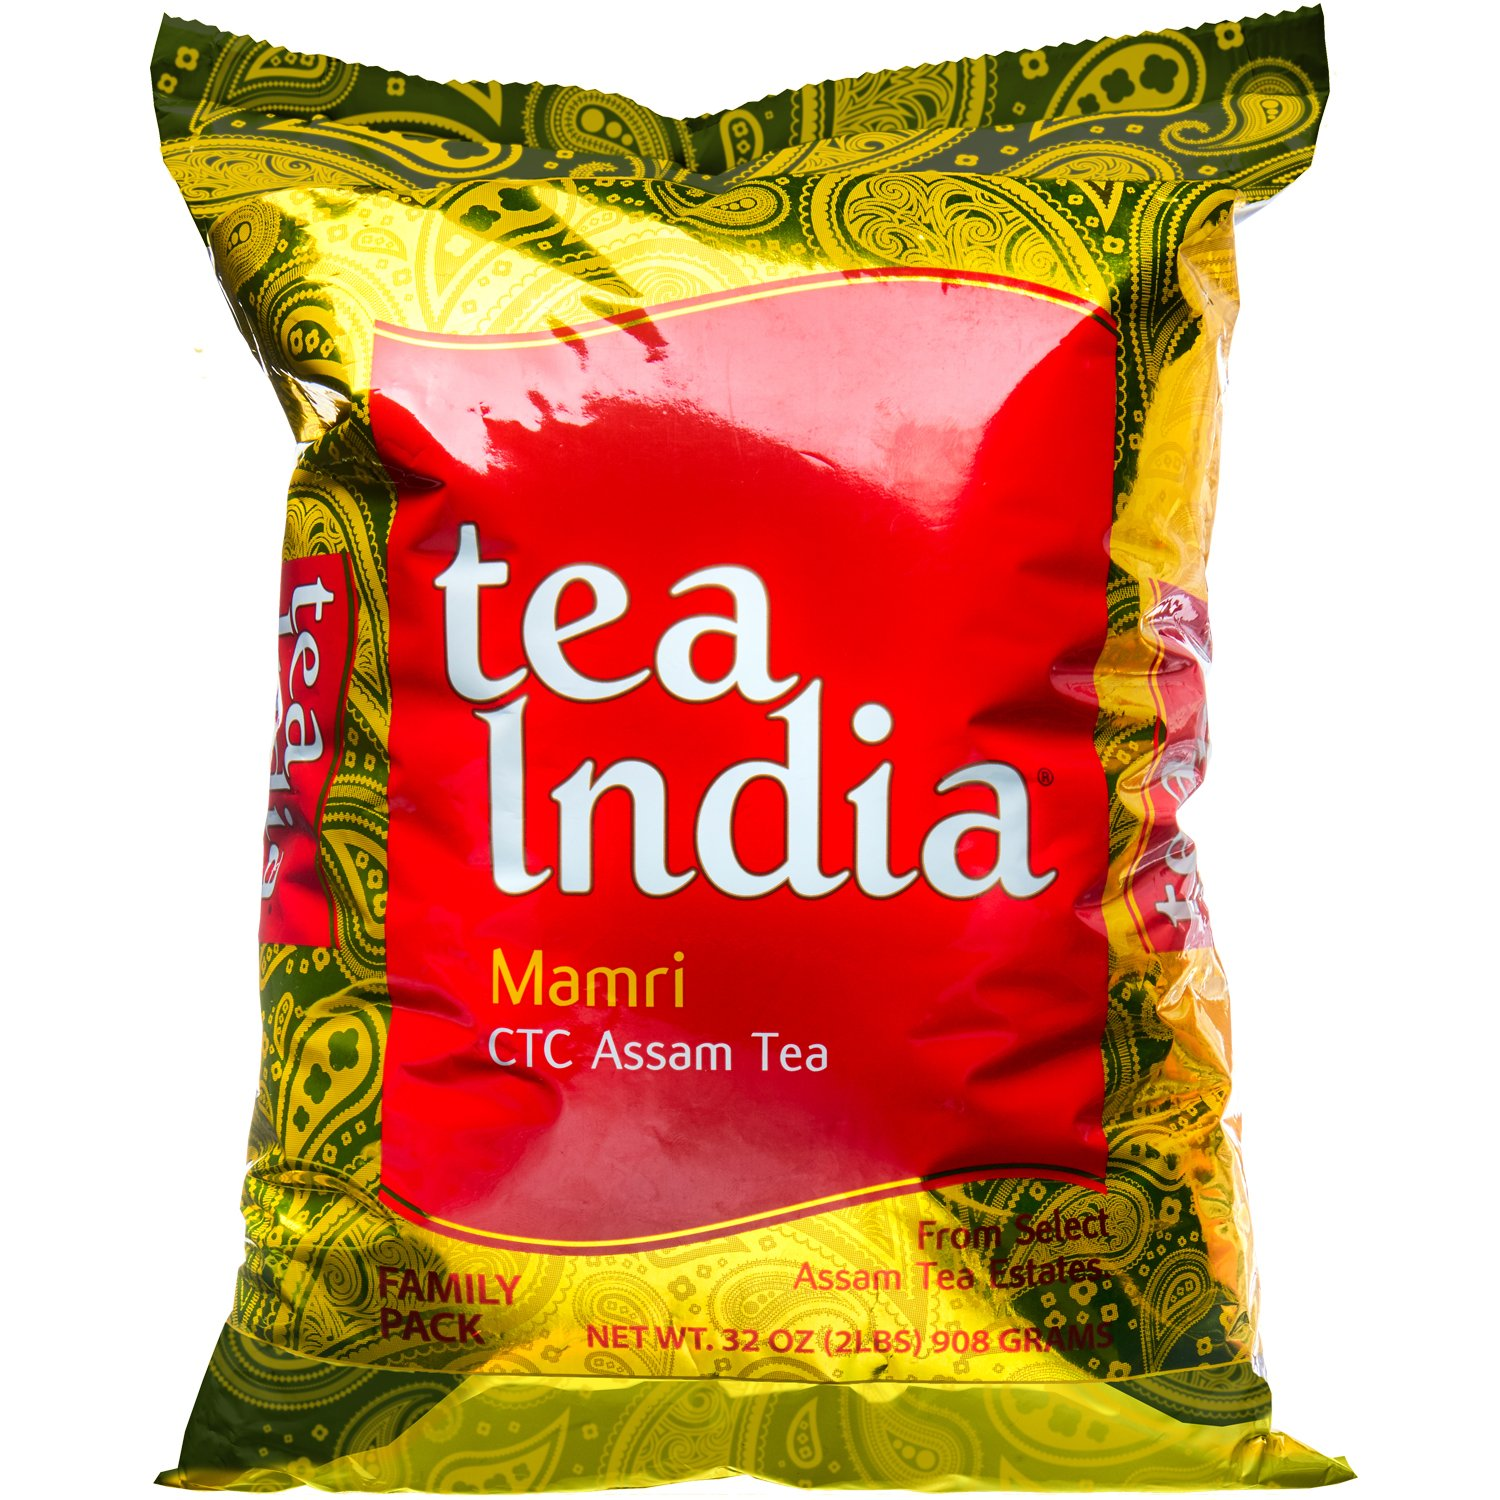 Tea India Premium CTC Assam Loose Black Tea, 2lbs. Packaging May Vary. by Tea India